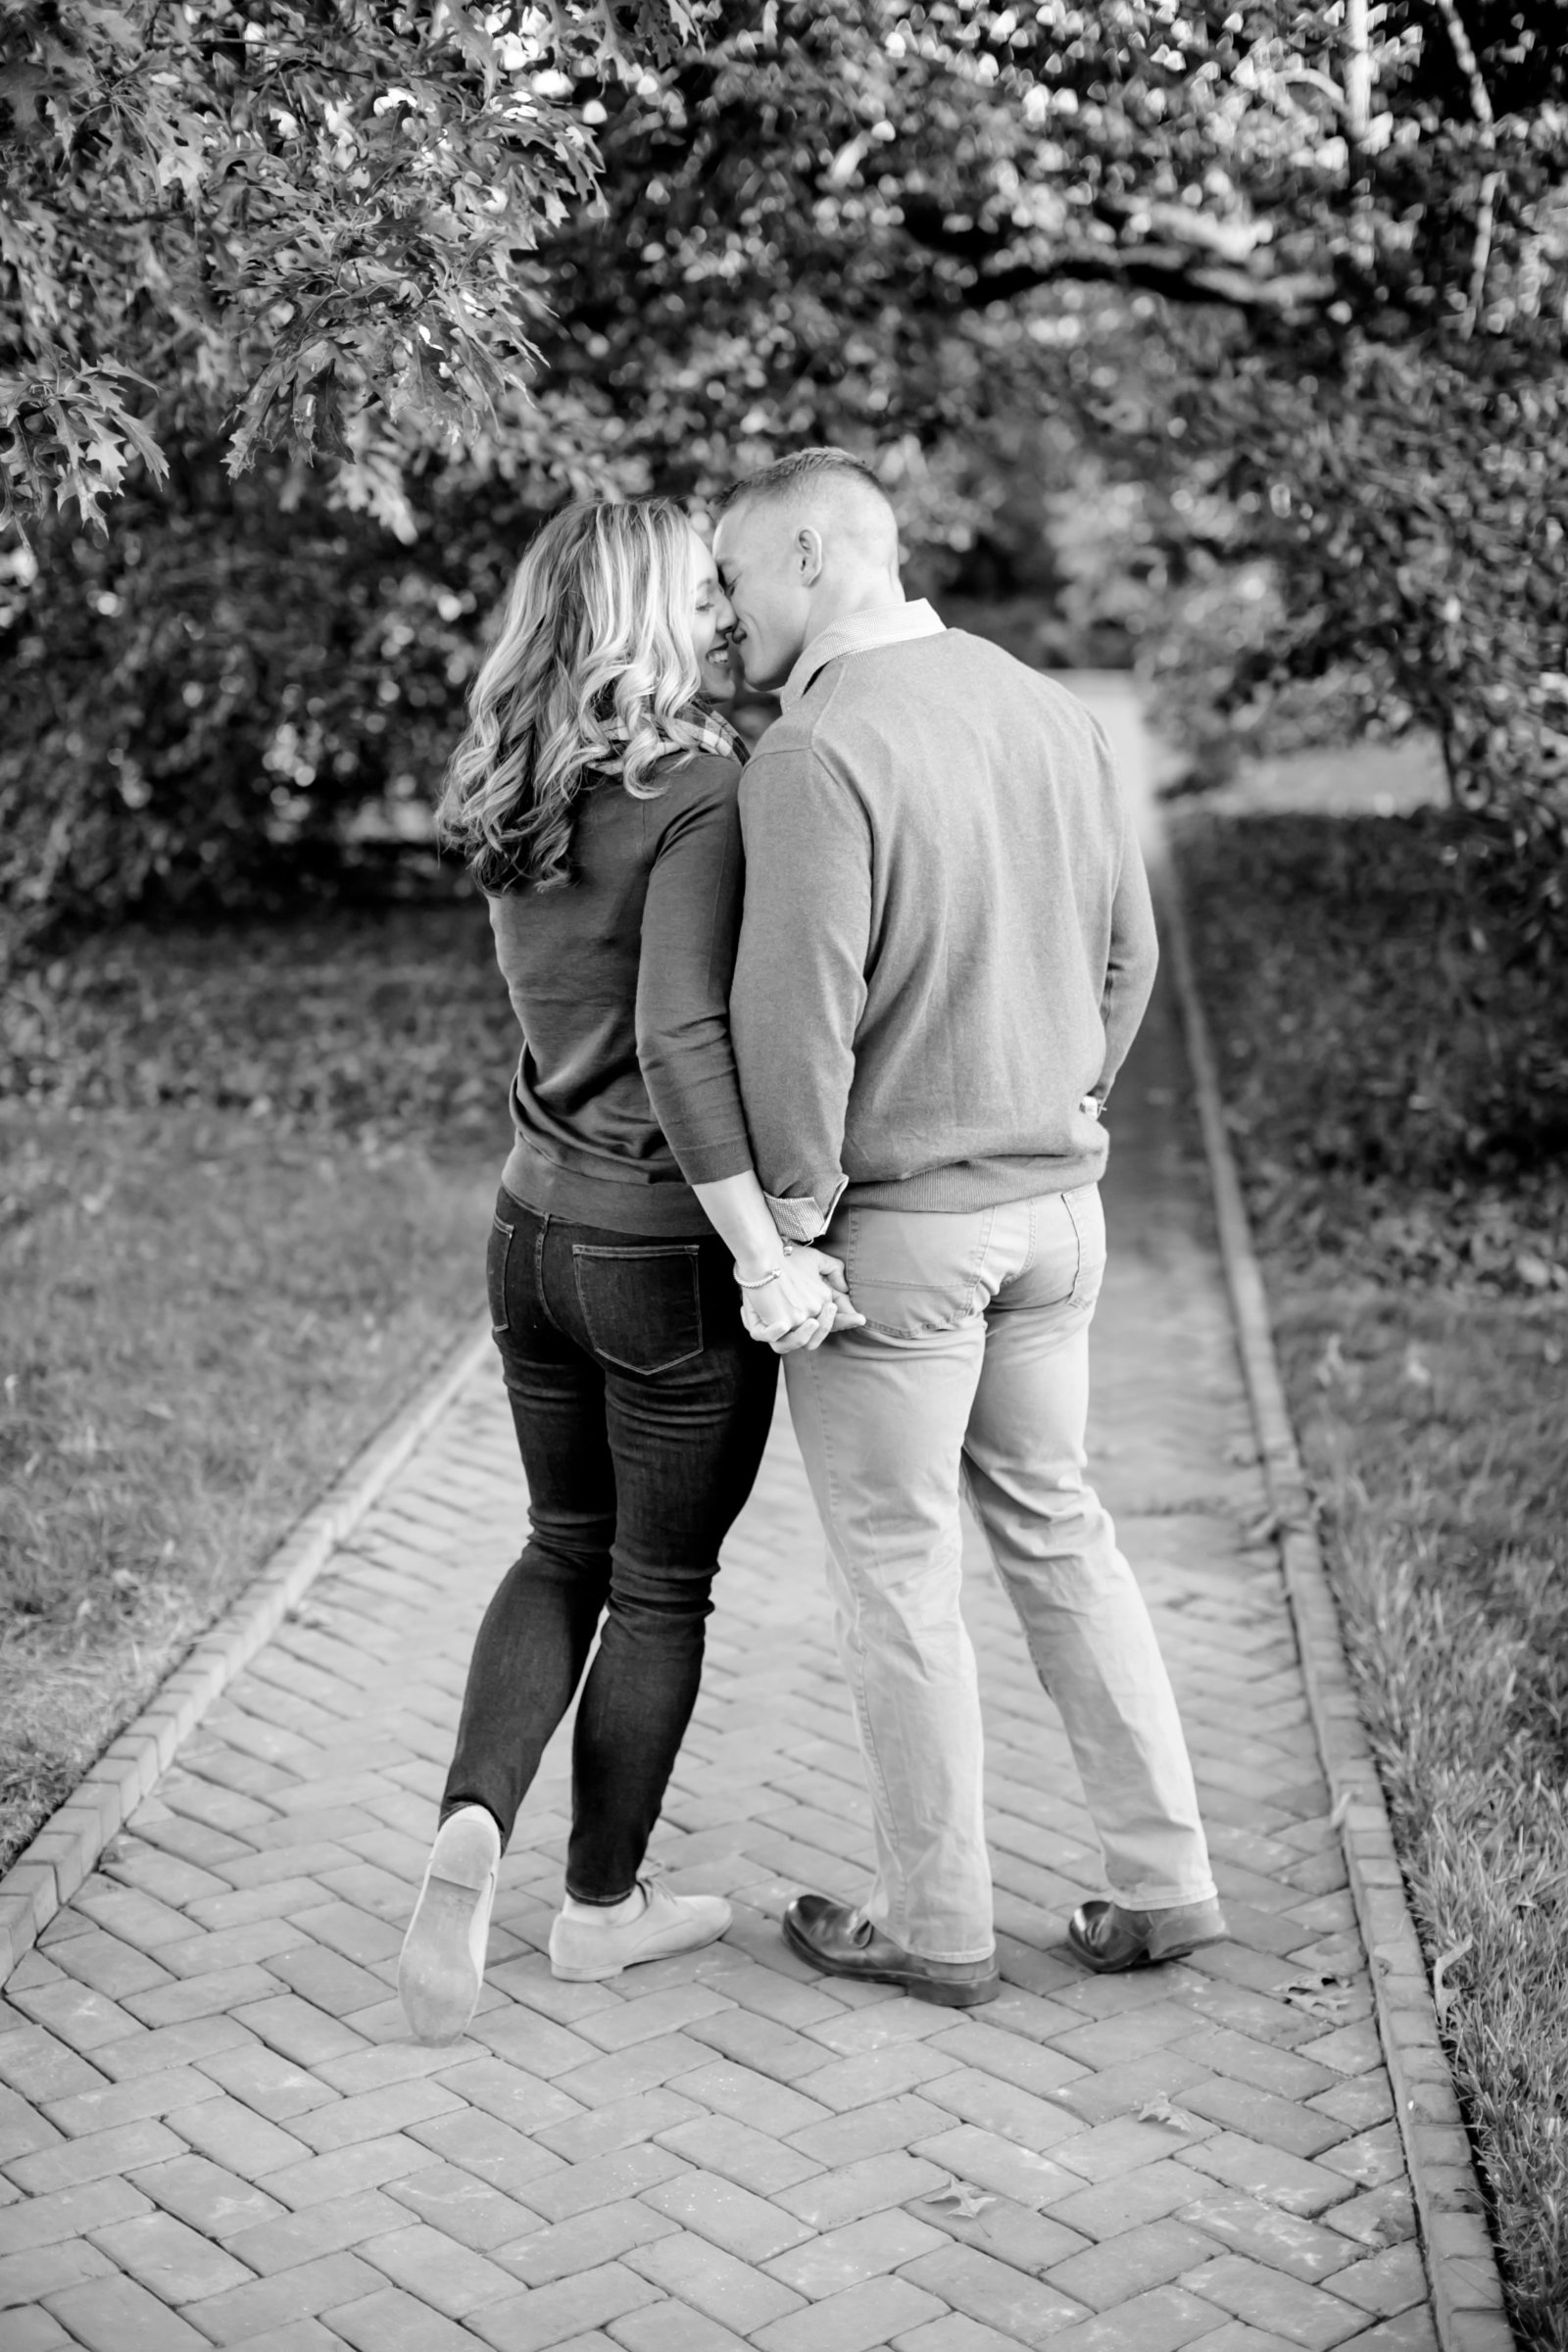 Carley Rehberg Photography - Engagement Photographer - Photo - 27